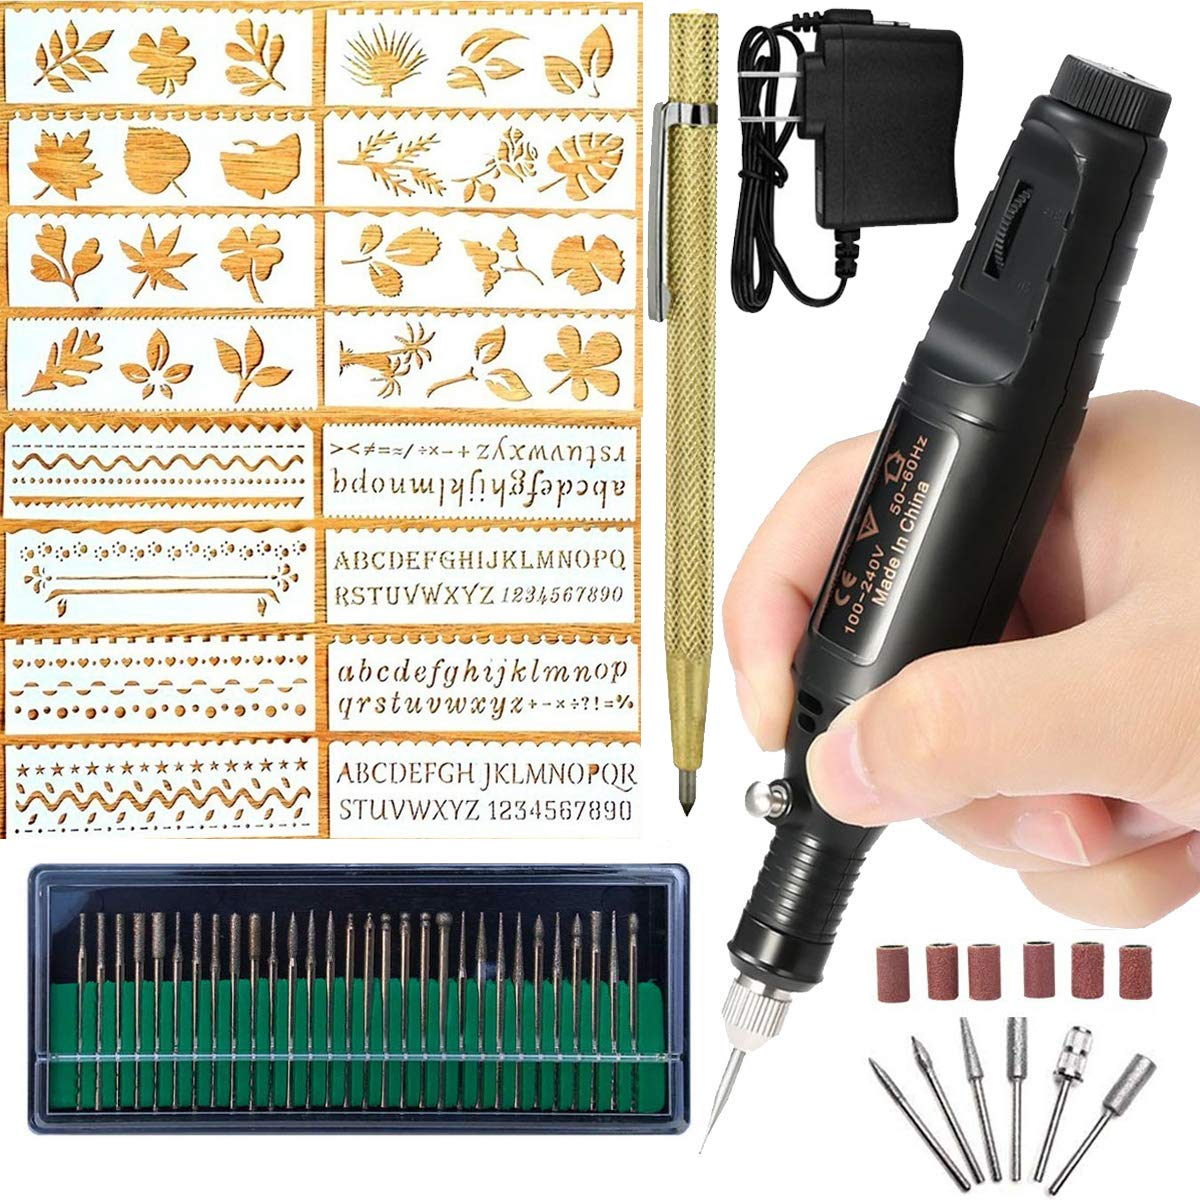 Electric Micro Engraver Pen Mini DIY Vibro Engraving Tool Kit for Metal Glass Ceramic Plastic Wood Jewelry with Scriber Etcher